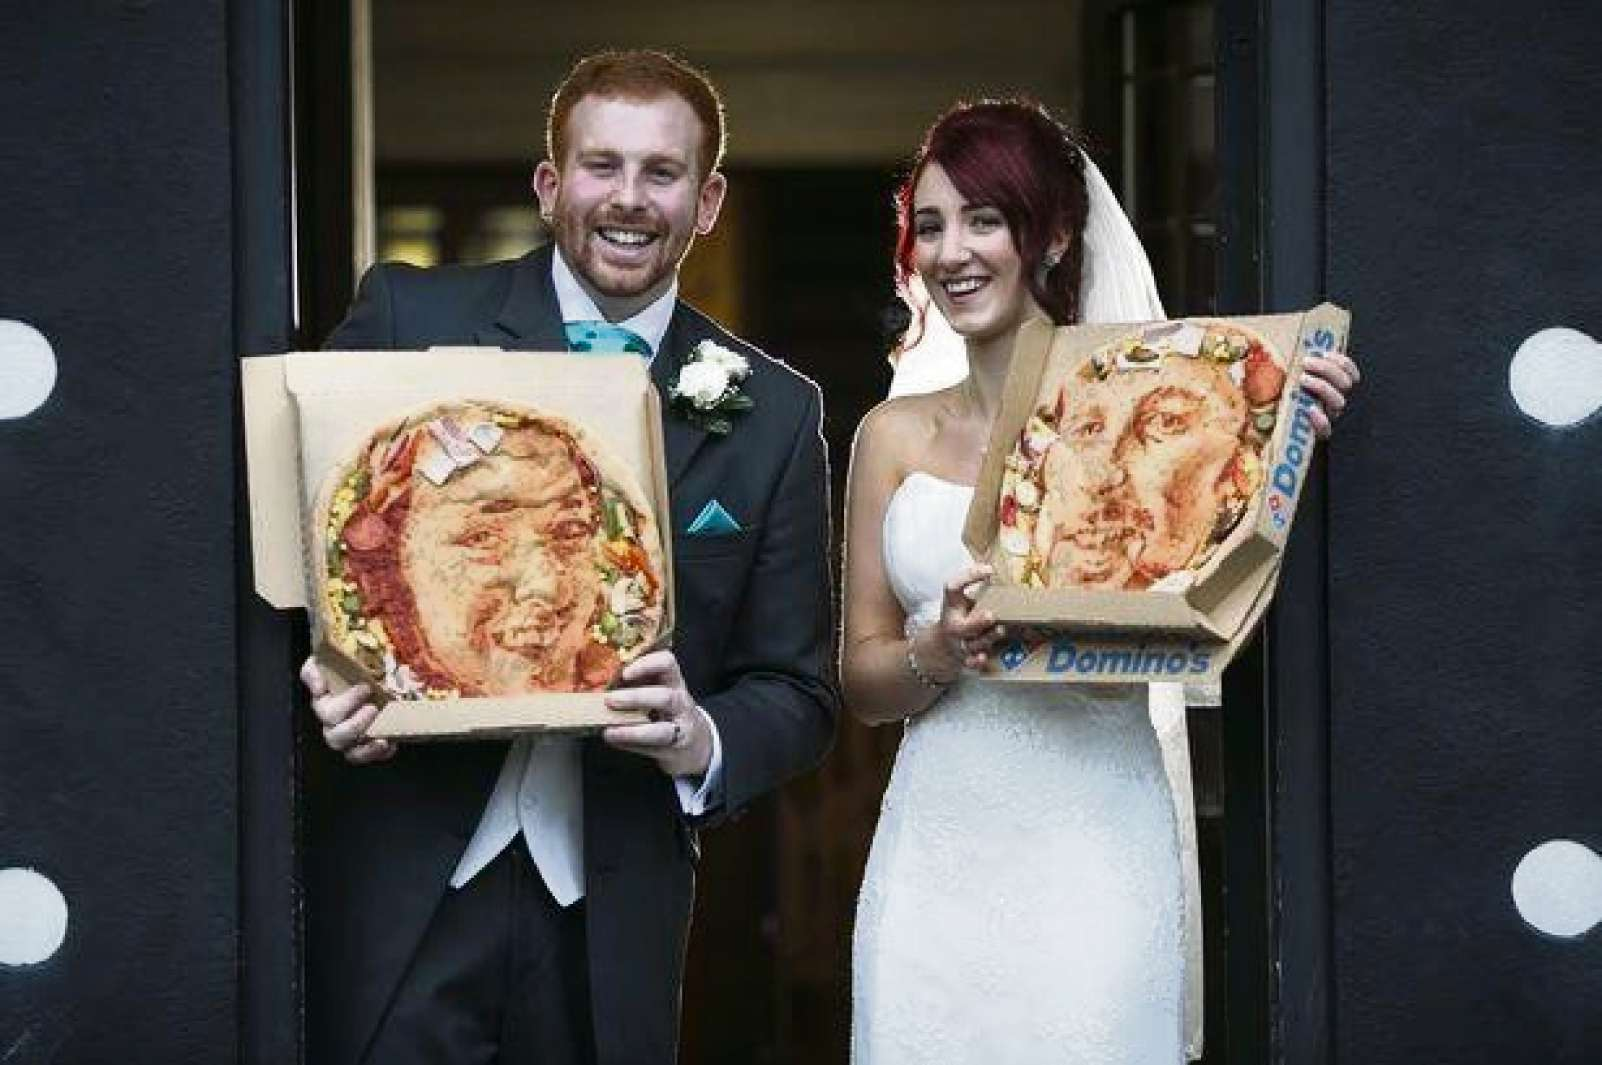 Ebbw Vale artist gives wedding couple pizza portrait